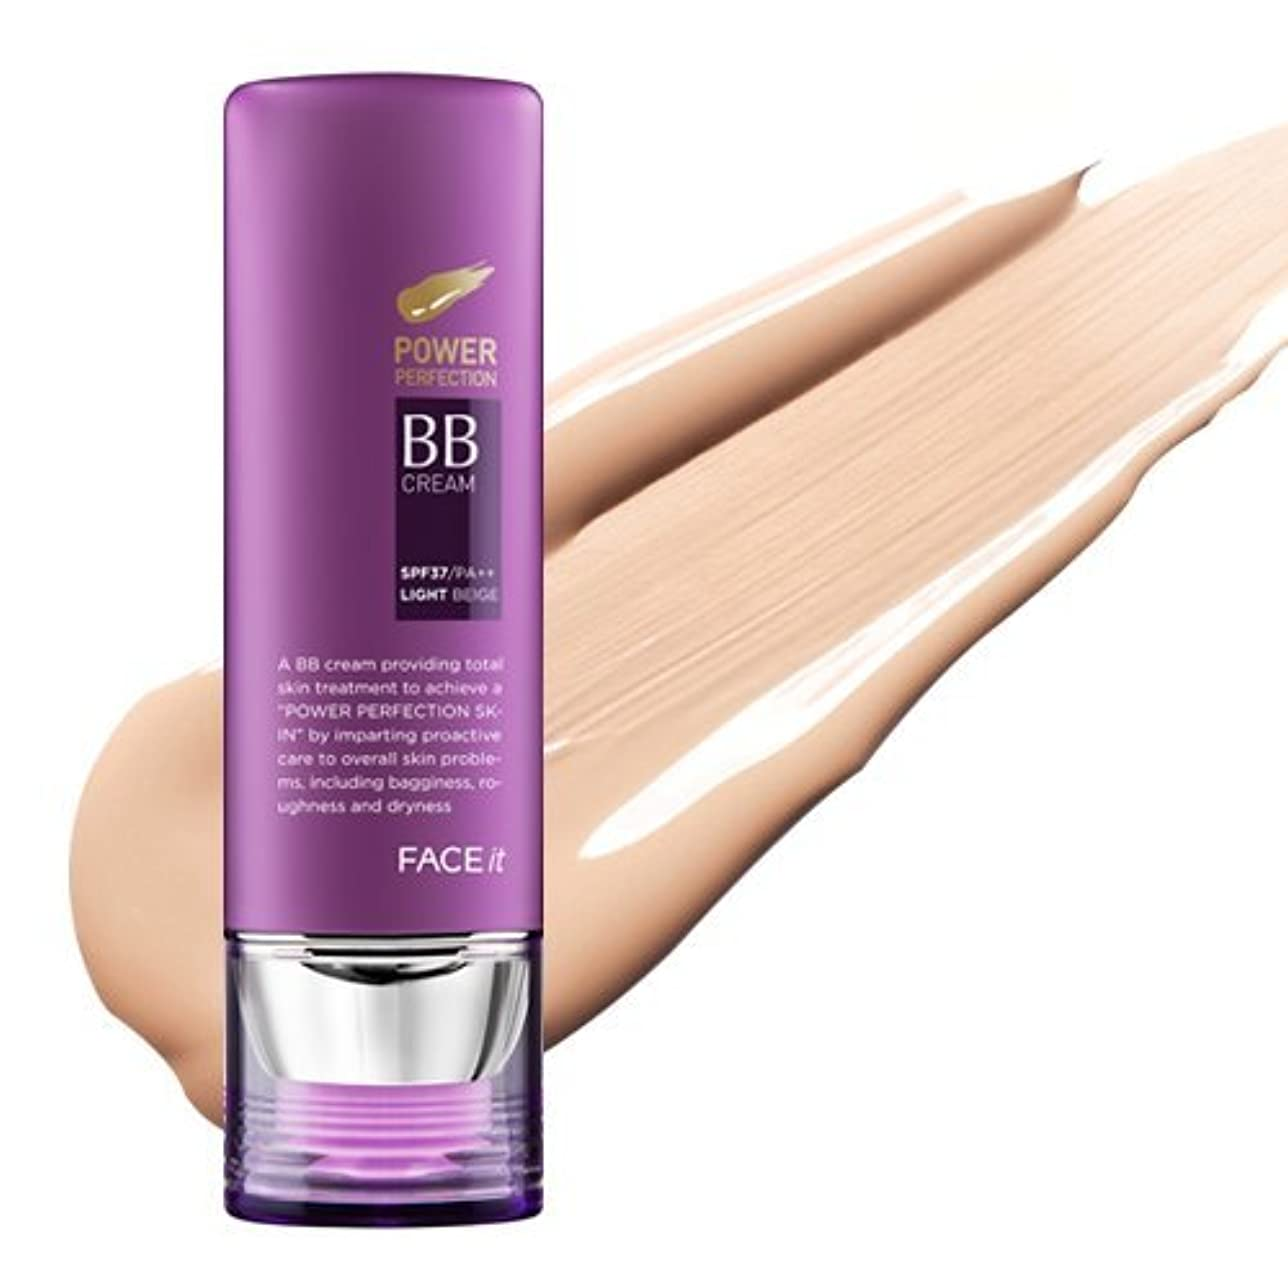 The Face Shop ザ?フェースショップ フォース?イット?パワー?パーペクト?ビービー?クリーム 02 ナチュラルベージュー (Face It Power Perfection BB Cream 02 Natural...